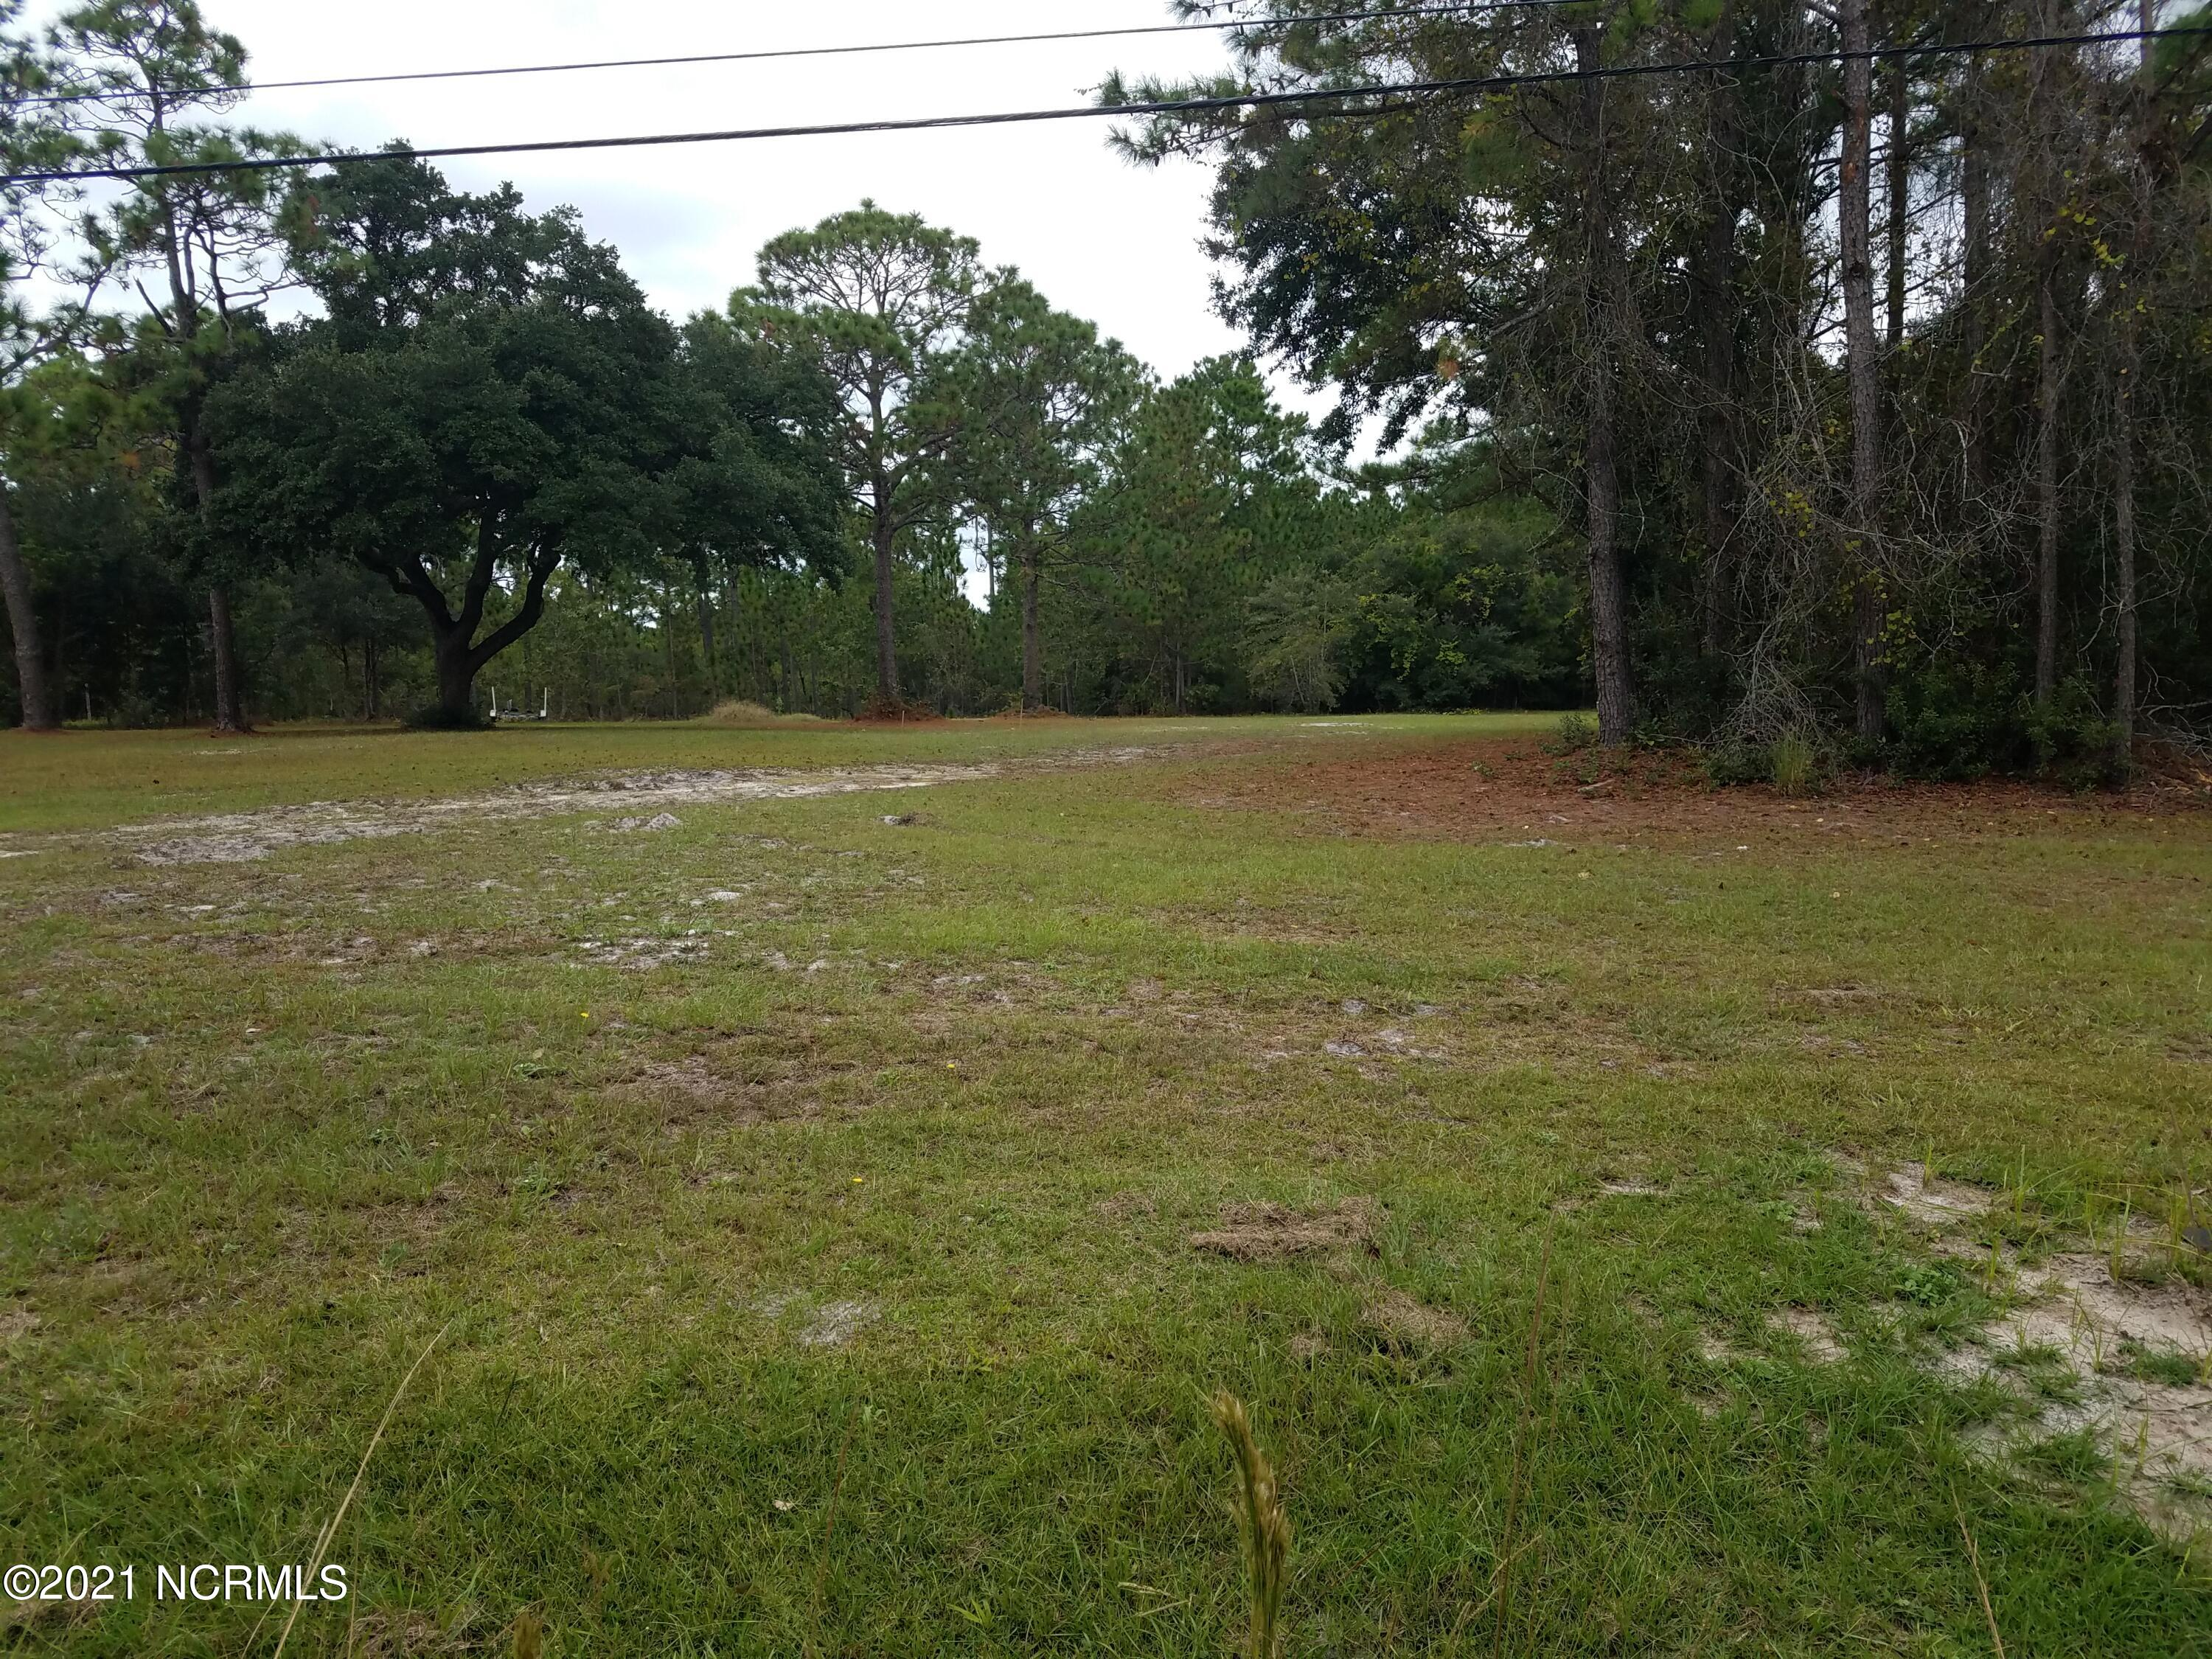 Very Nice .46 acre  level cleared building lot just minutes from Surf City. Water tap has been paid for with Town Of Holly Ridge. Sellers have had Pittman Soil Consulting out to the property and have plans drawn up for 3 bedroom septic system (See documents for proposed septic system). A Must see!!!